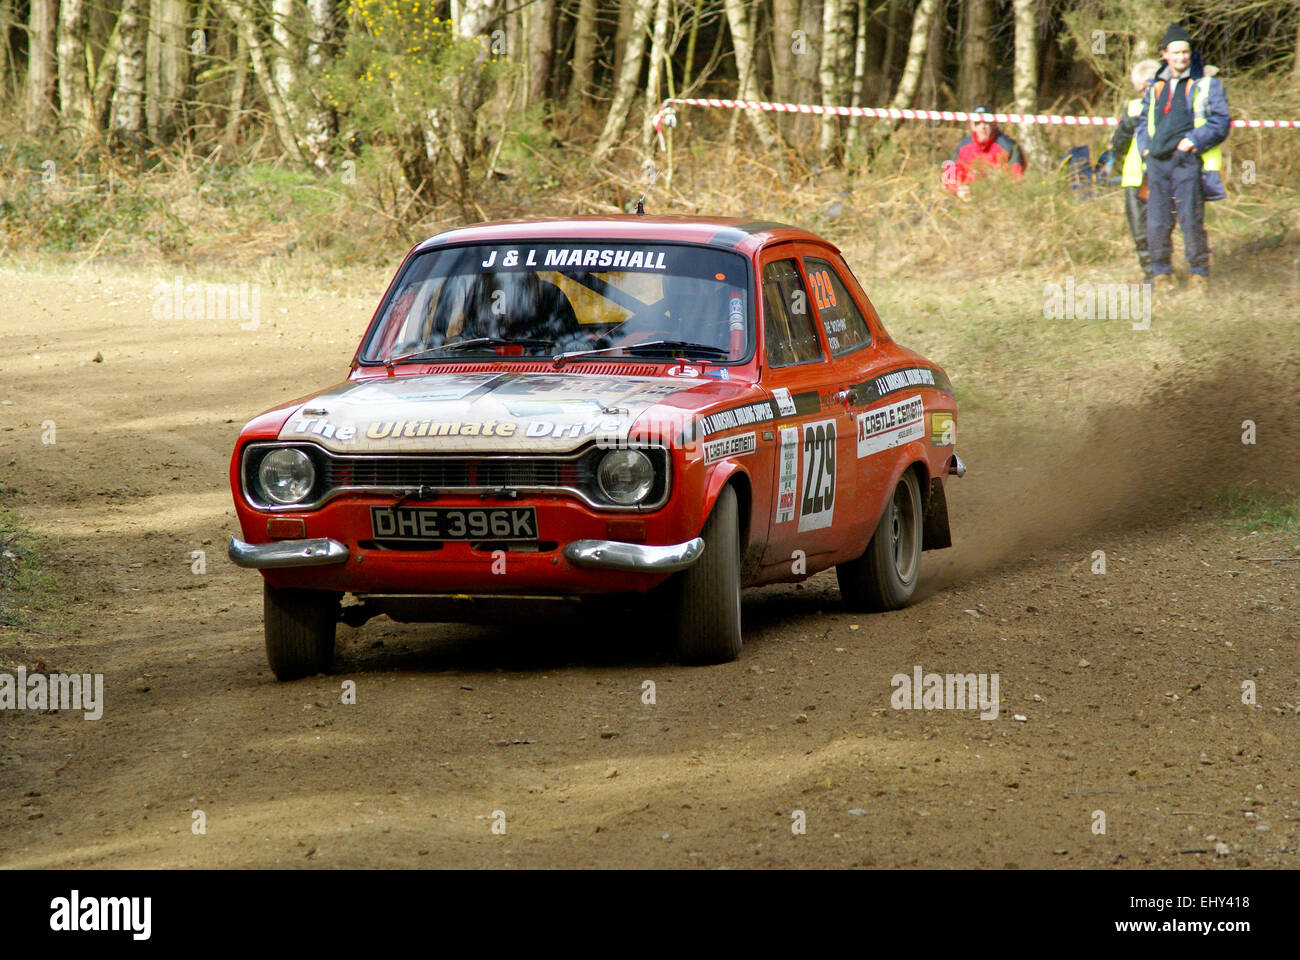 Ford Escort MK1 Rally Car Stock Photo, Royalty Free Image ...